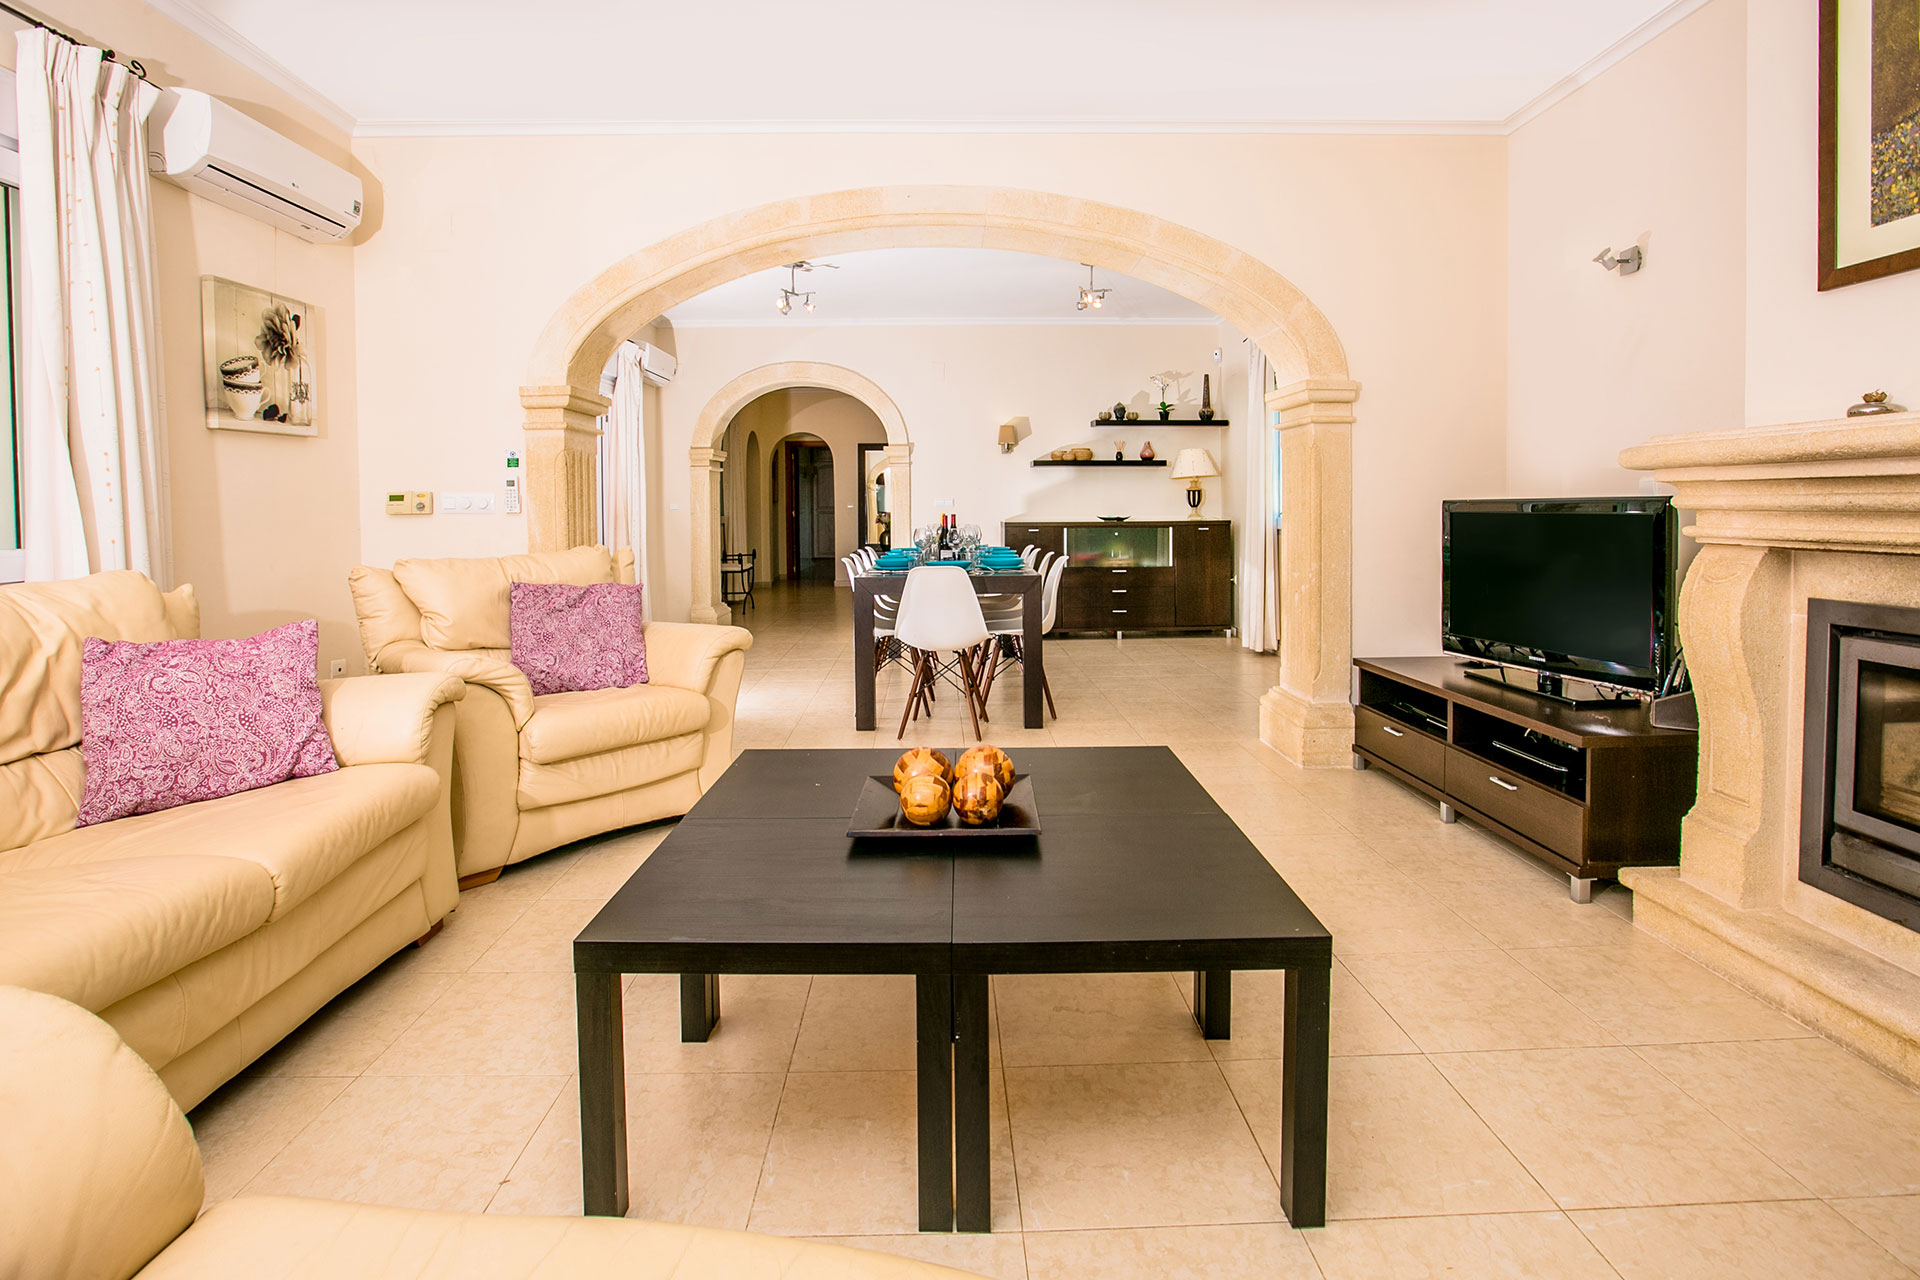 Homeaway javea open plan living area.